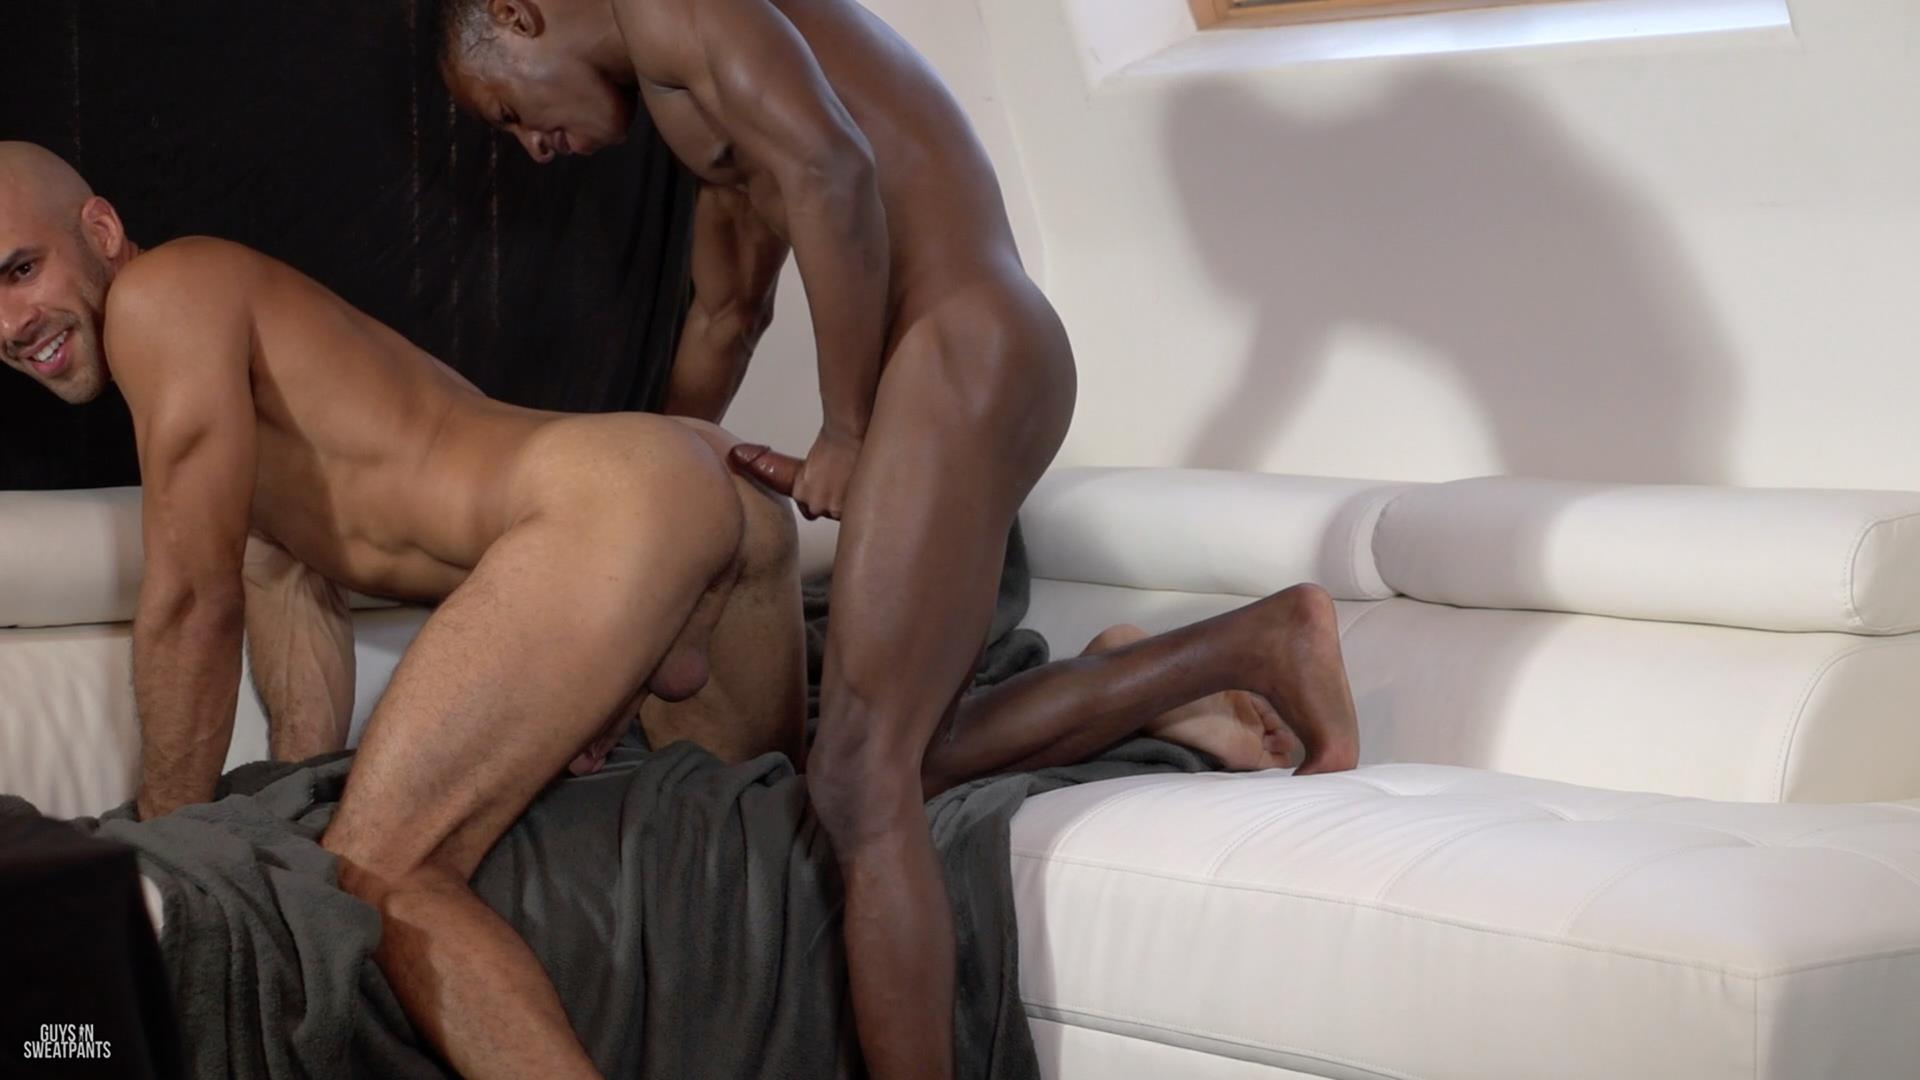 Guys in Sweatpants Austin Wilde and Liam Cyber Bareback Interracial Sex Amateur Gay Porn 05 Austin Wilde Takes A Big Black Bareback Cock Up The Ass